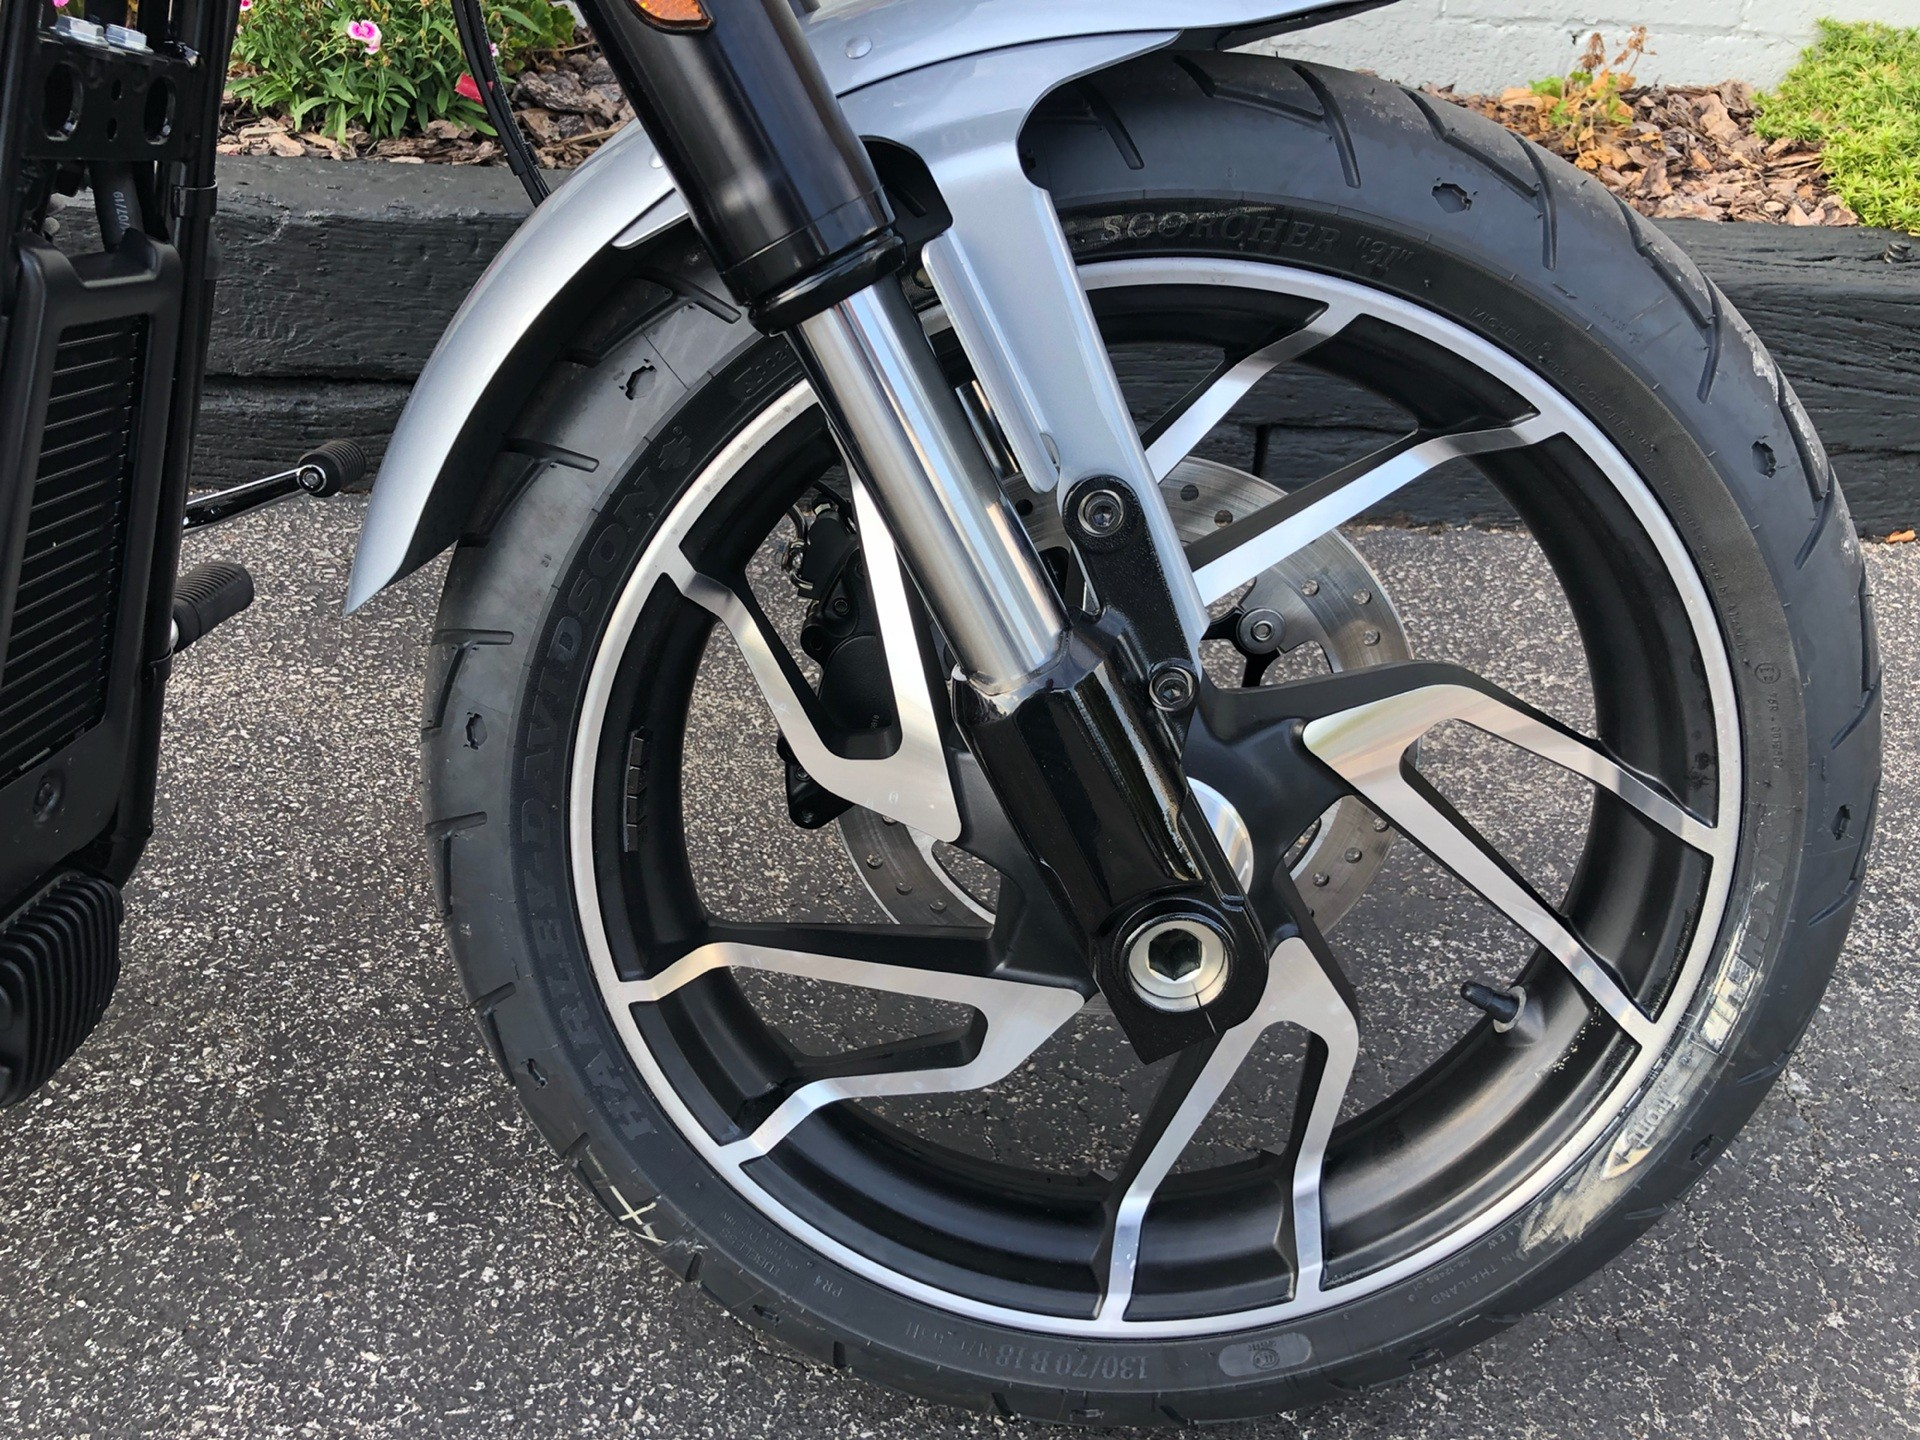 2019 Harley-Davidson FLSB in Sunbury, Ohio - Photo 12